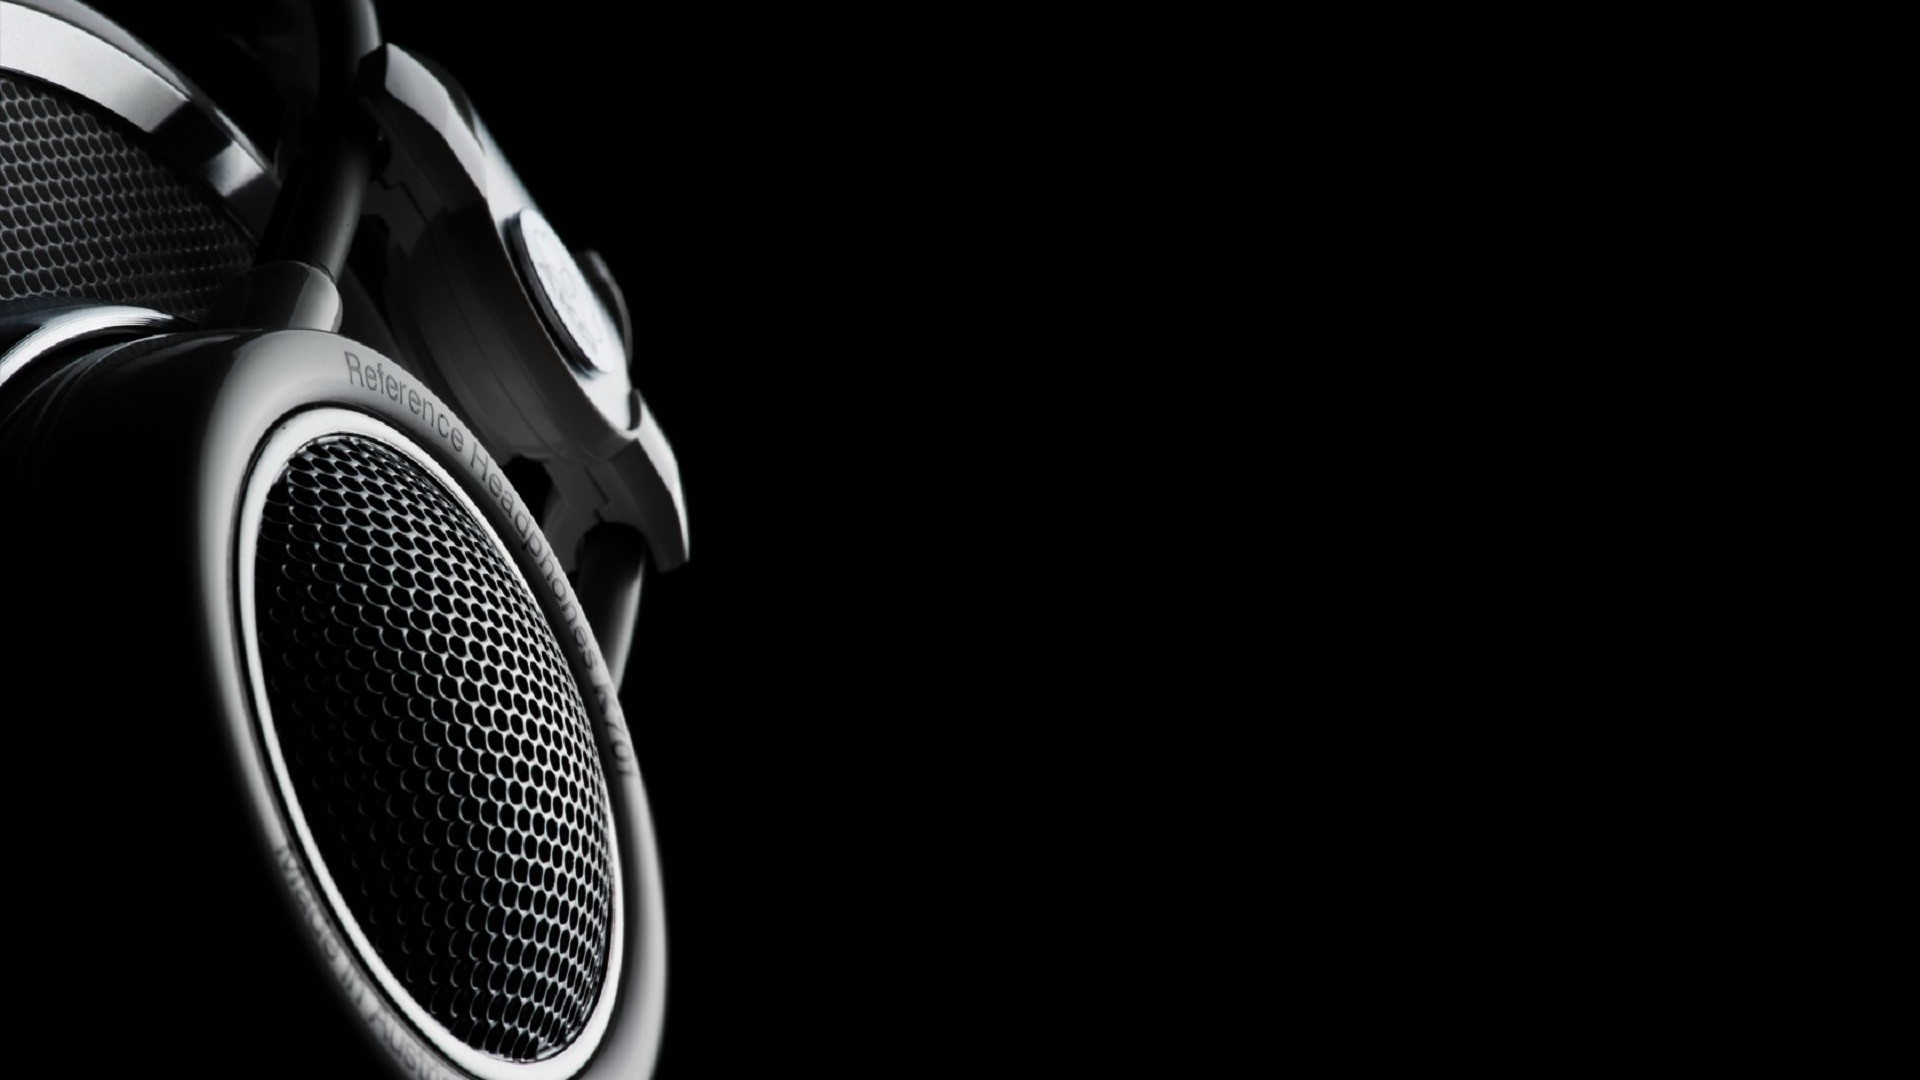 Black and White Wallpaper Music – HD Images New. Image Resolution:1920×1080